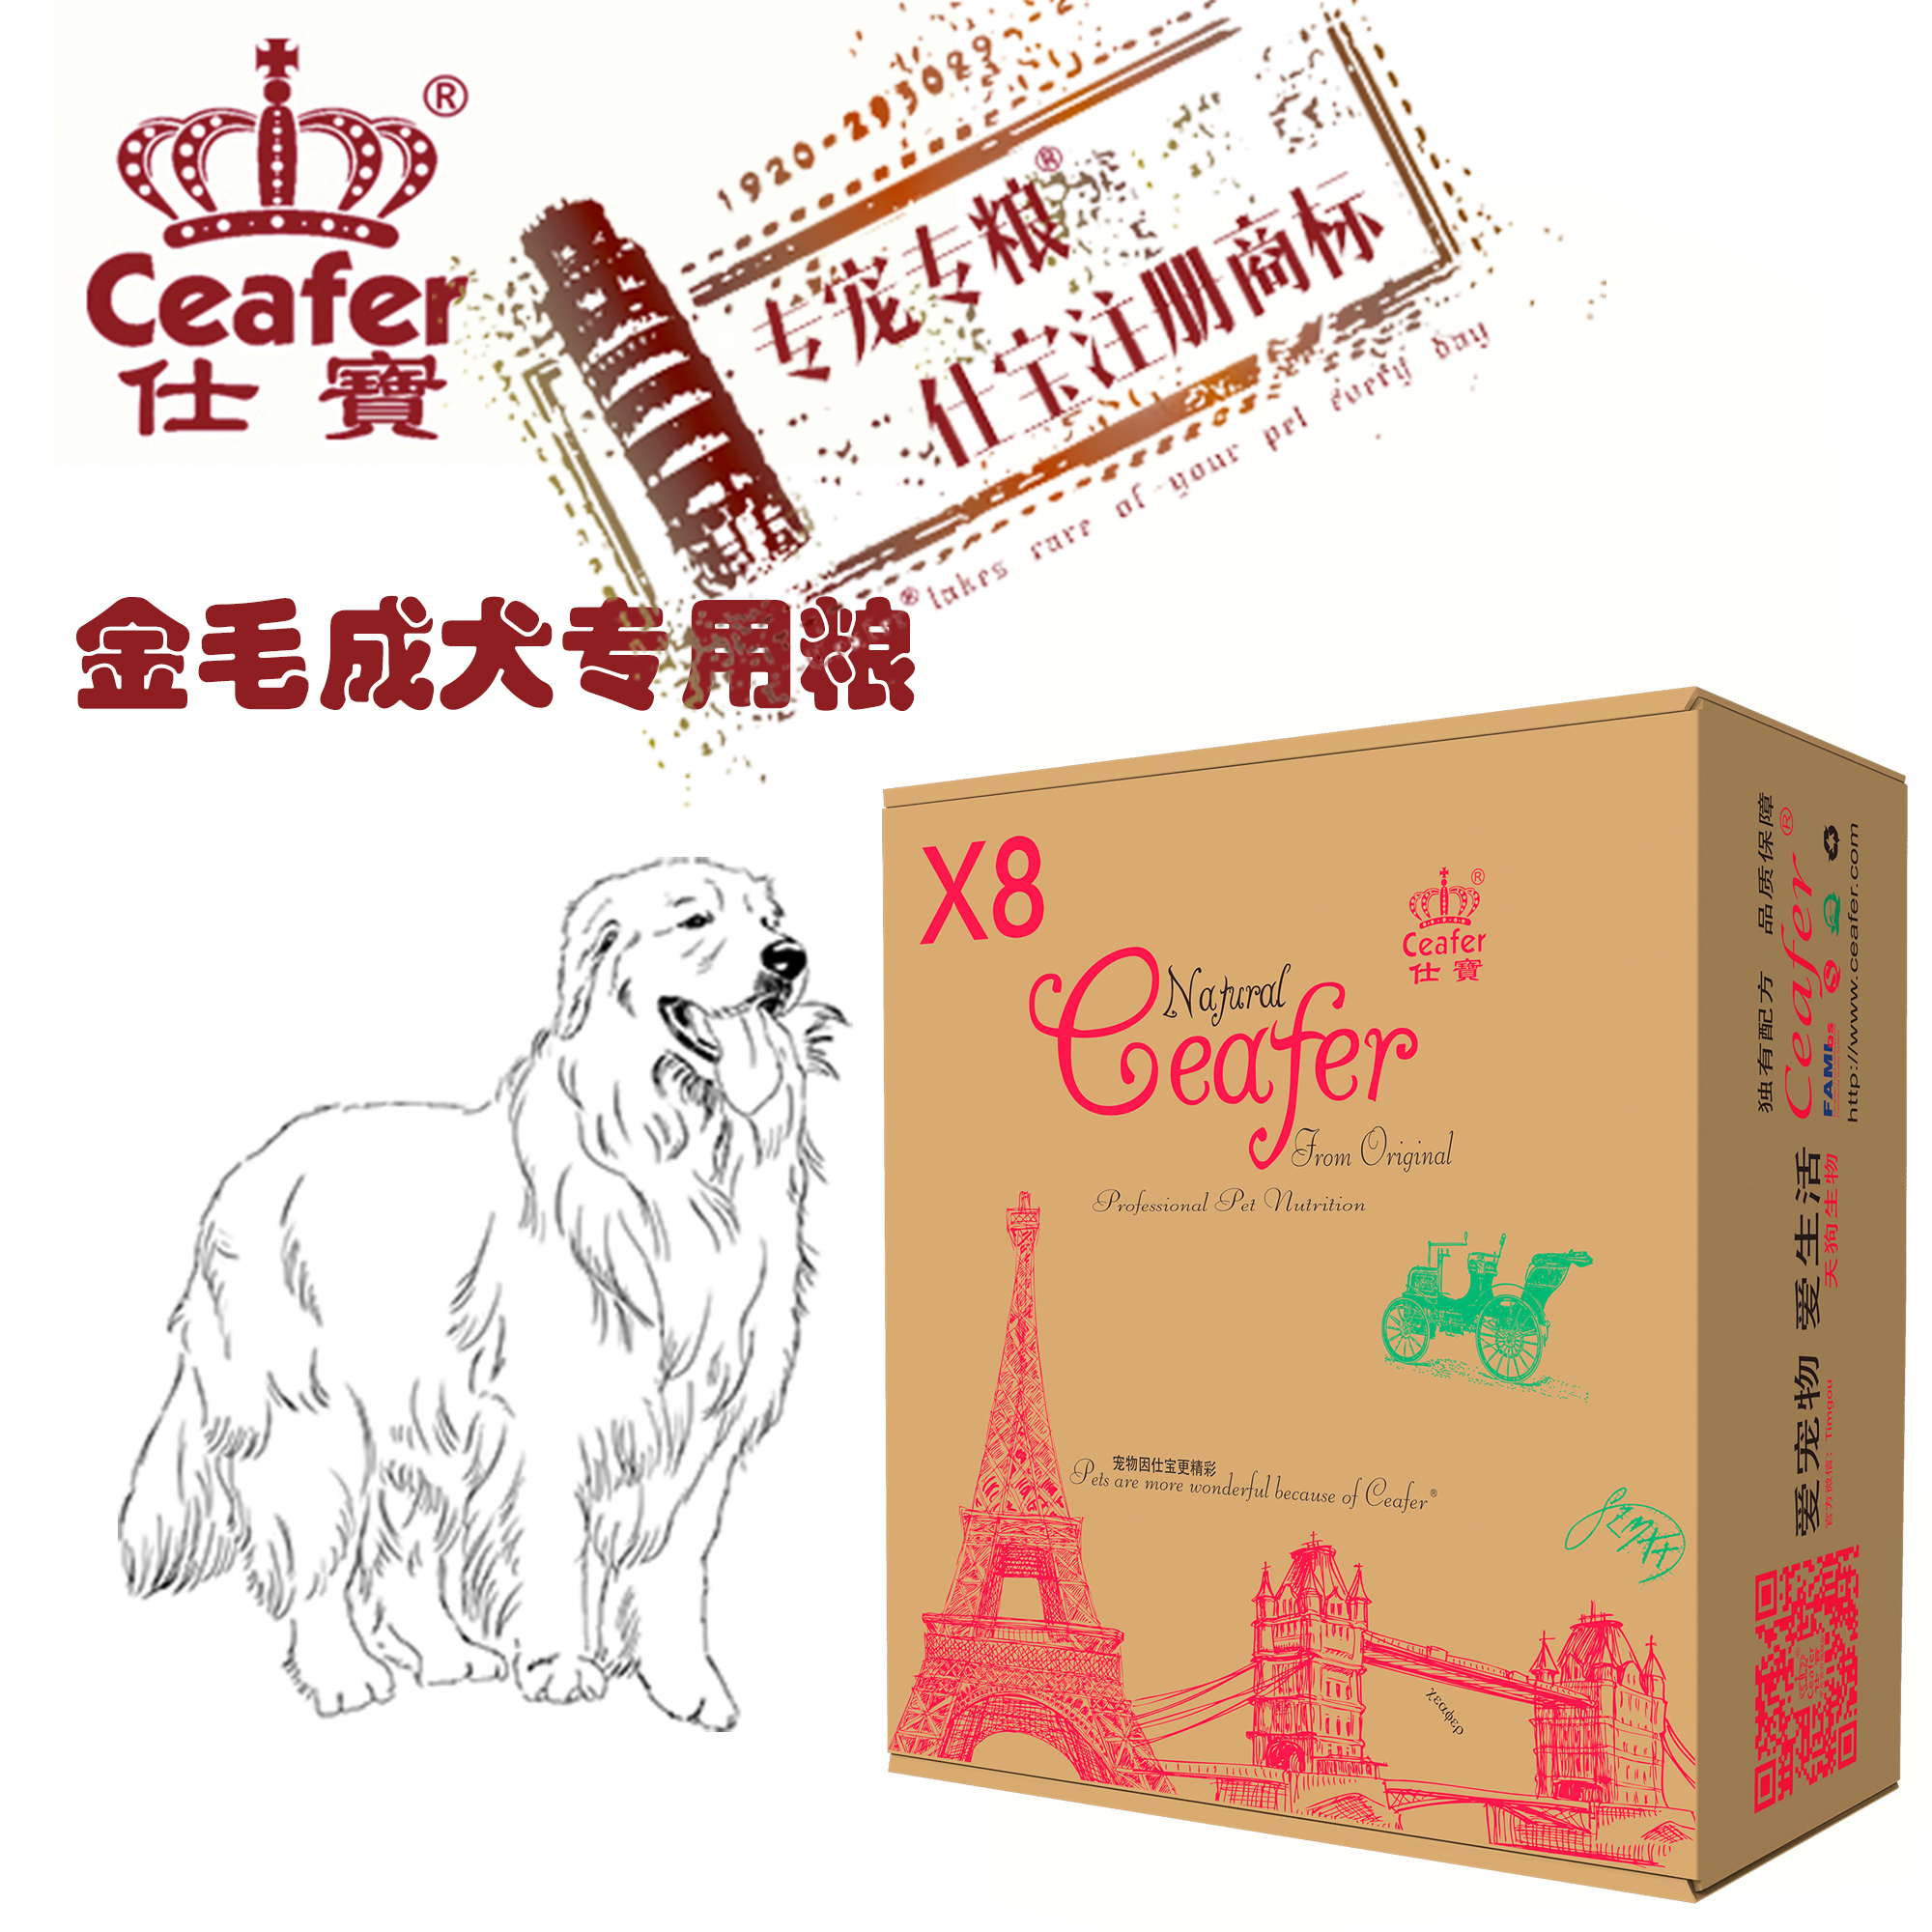 British shi bao goldens deep sea fish adult dog food dog food natural dog food adult dog food 14.4 kg